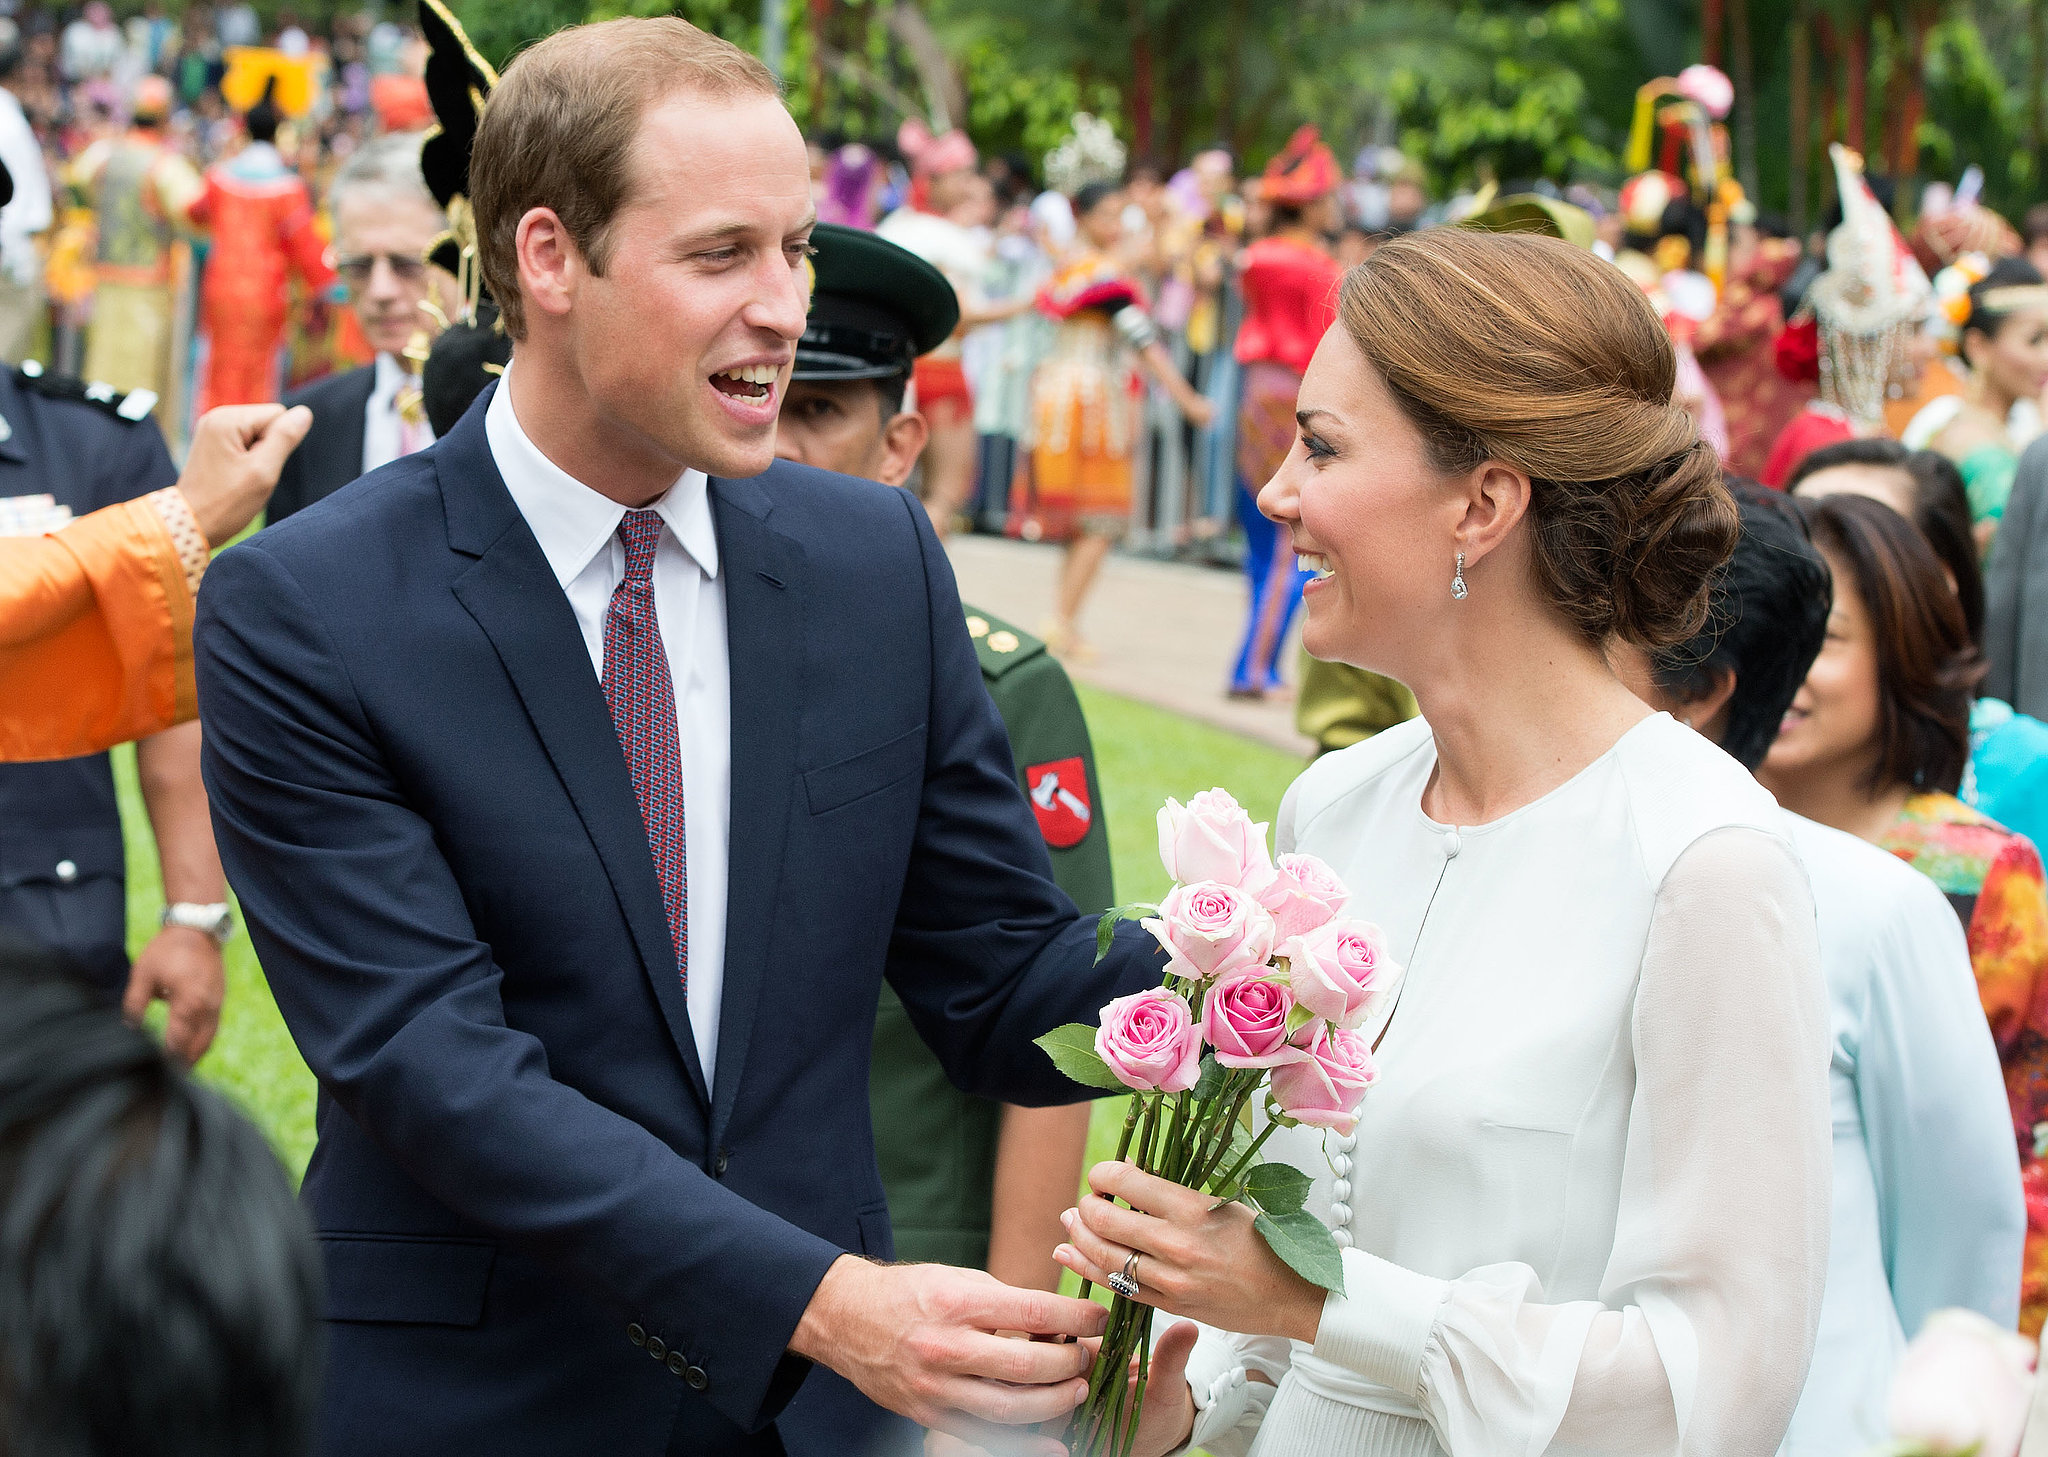 In September 2012, William presented Kate with flowers during stop in Kuala Lumpur.